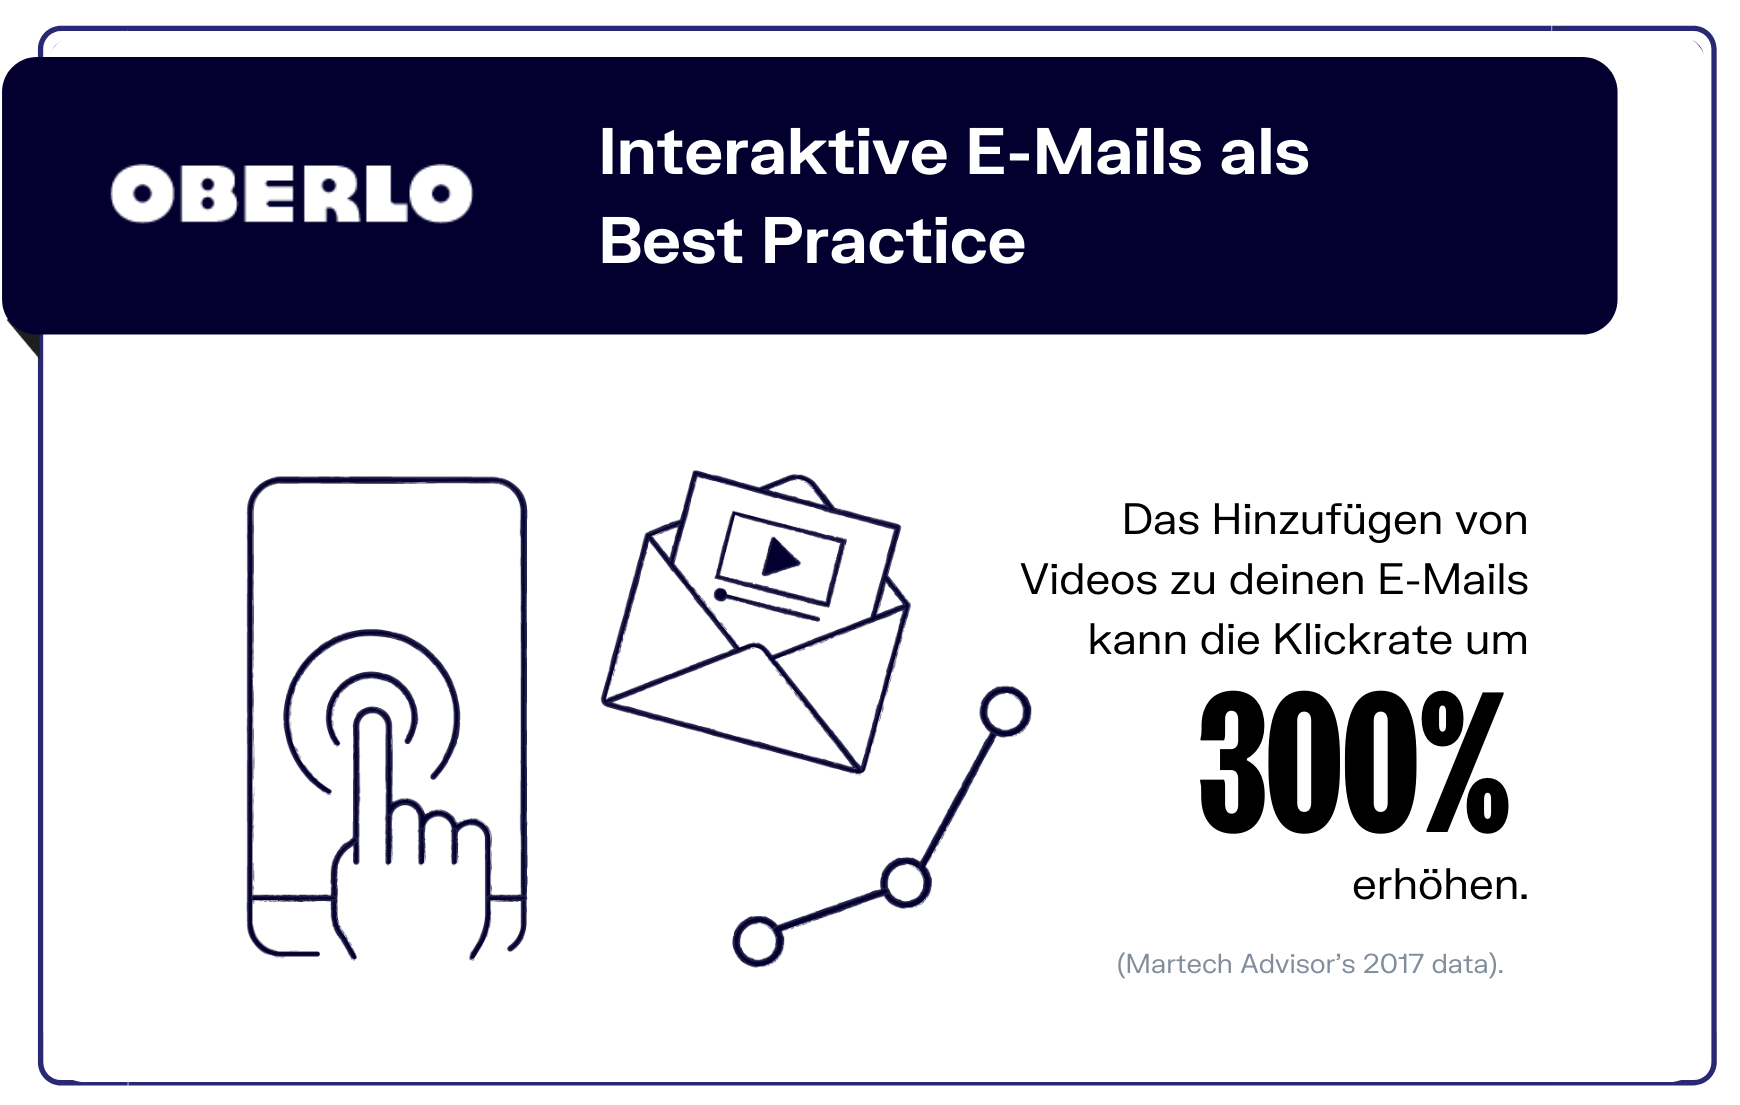 E-Mail-Marketing Statistik und interaktive Inhalte